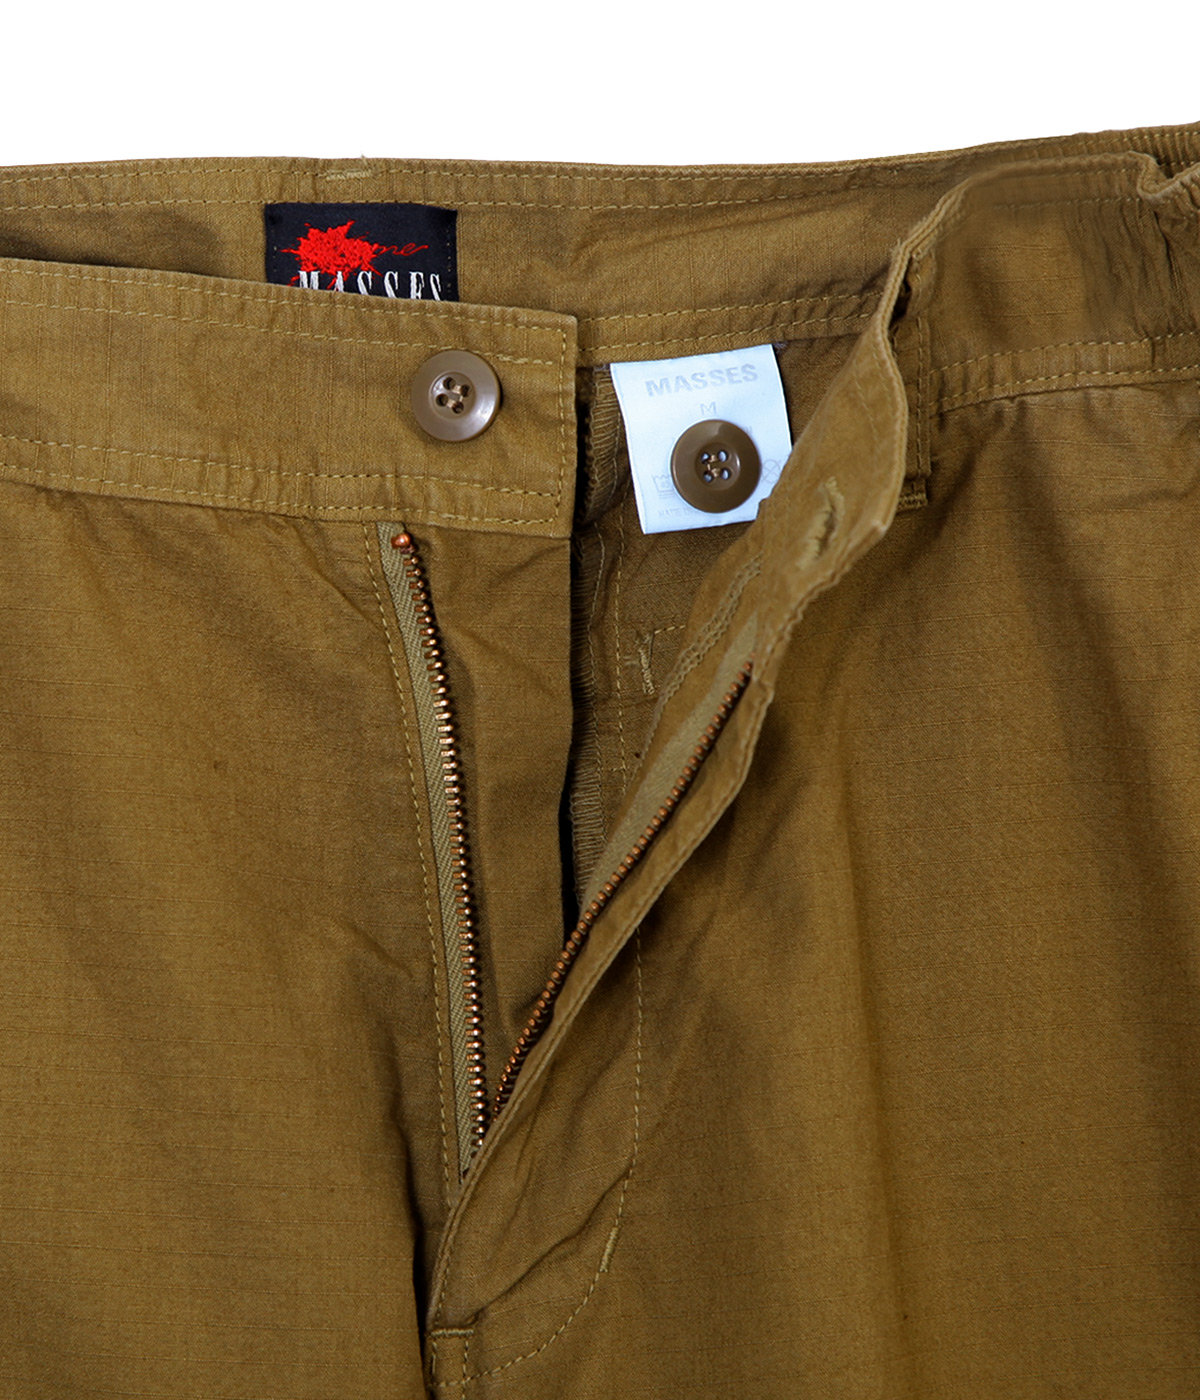 SIX POCKET PANTS